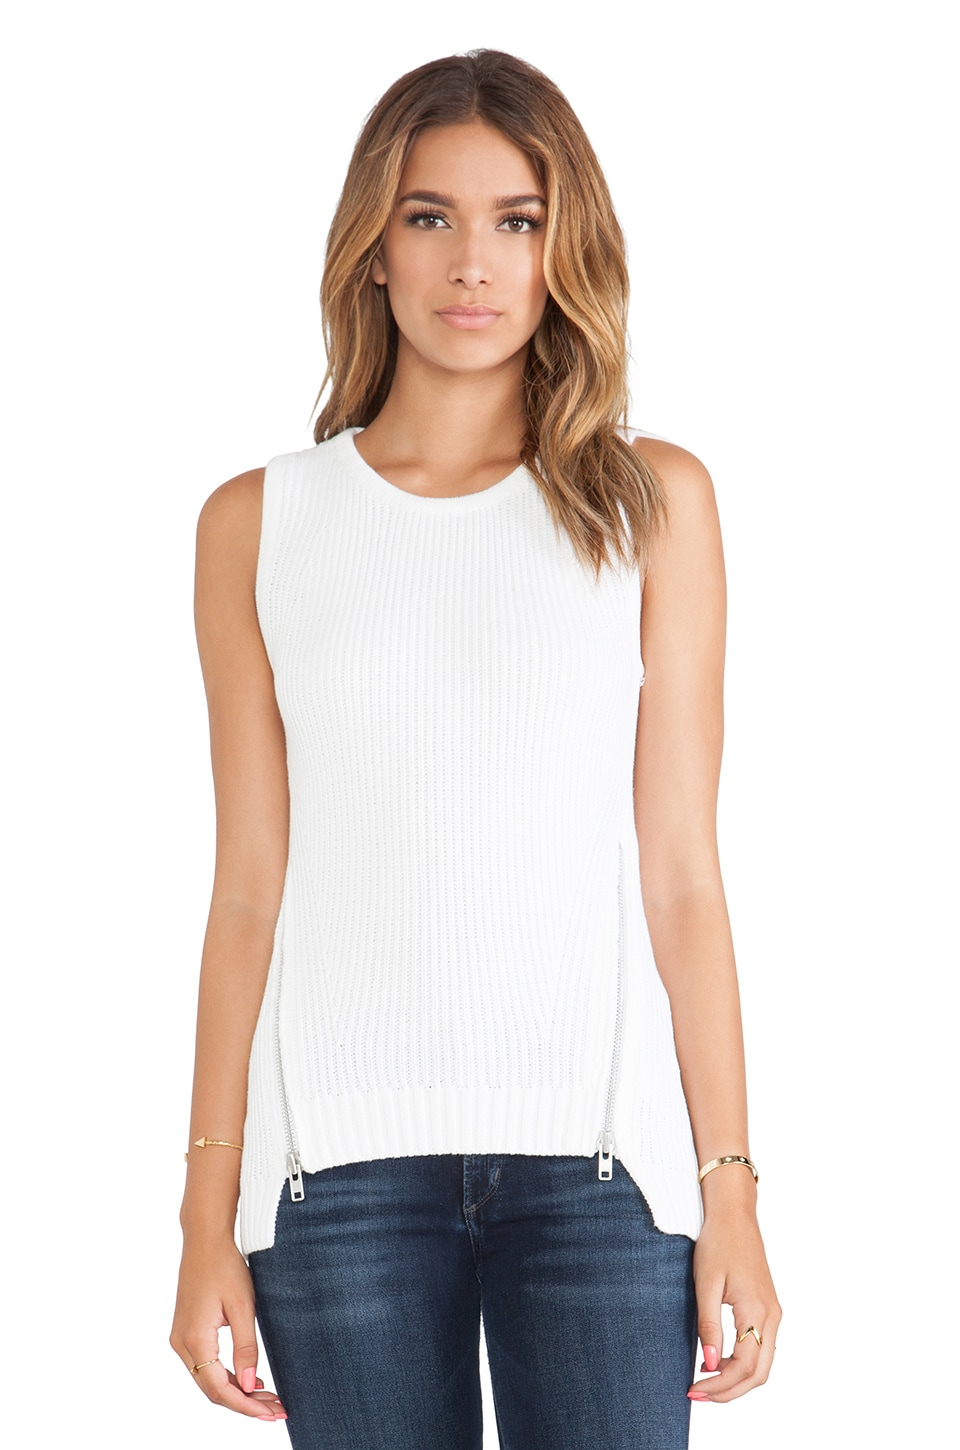 Bardot Miley Zip Top in Ivory